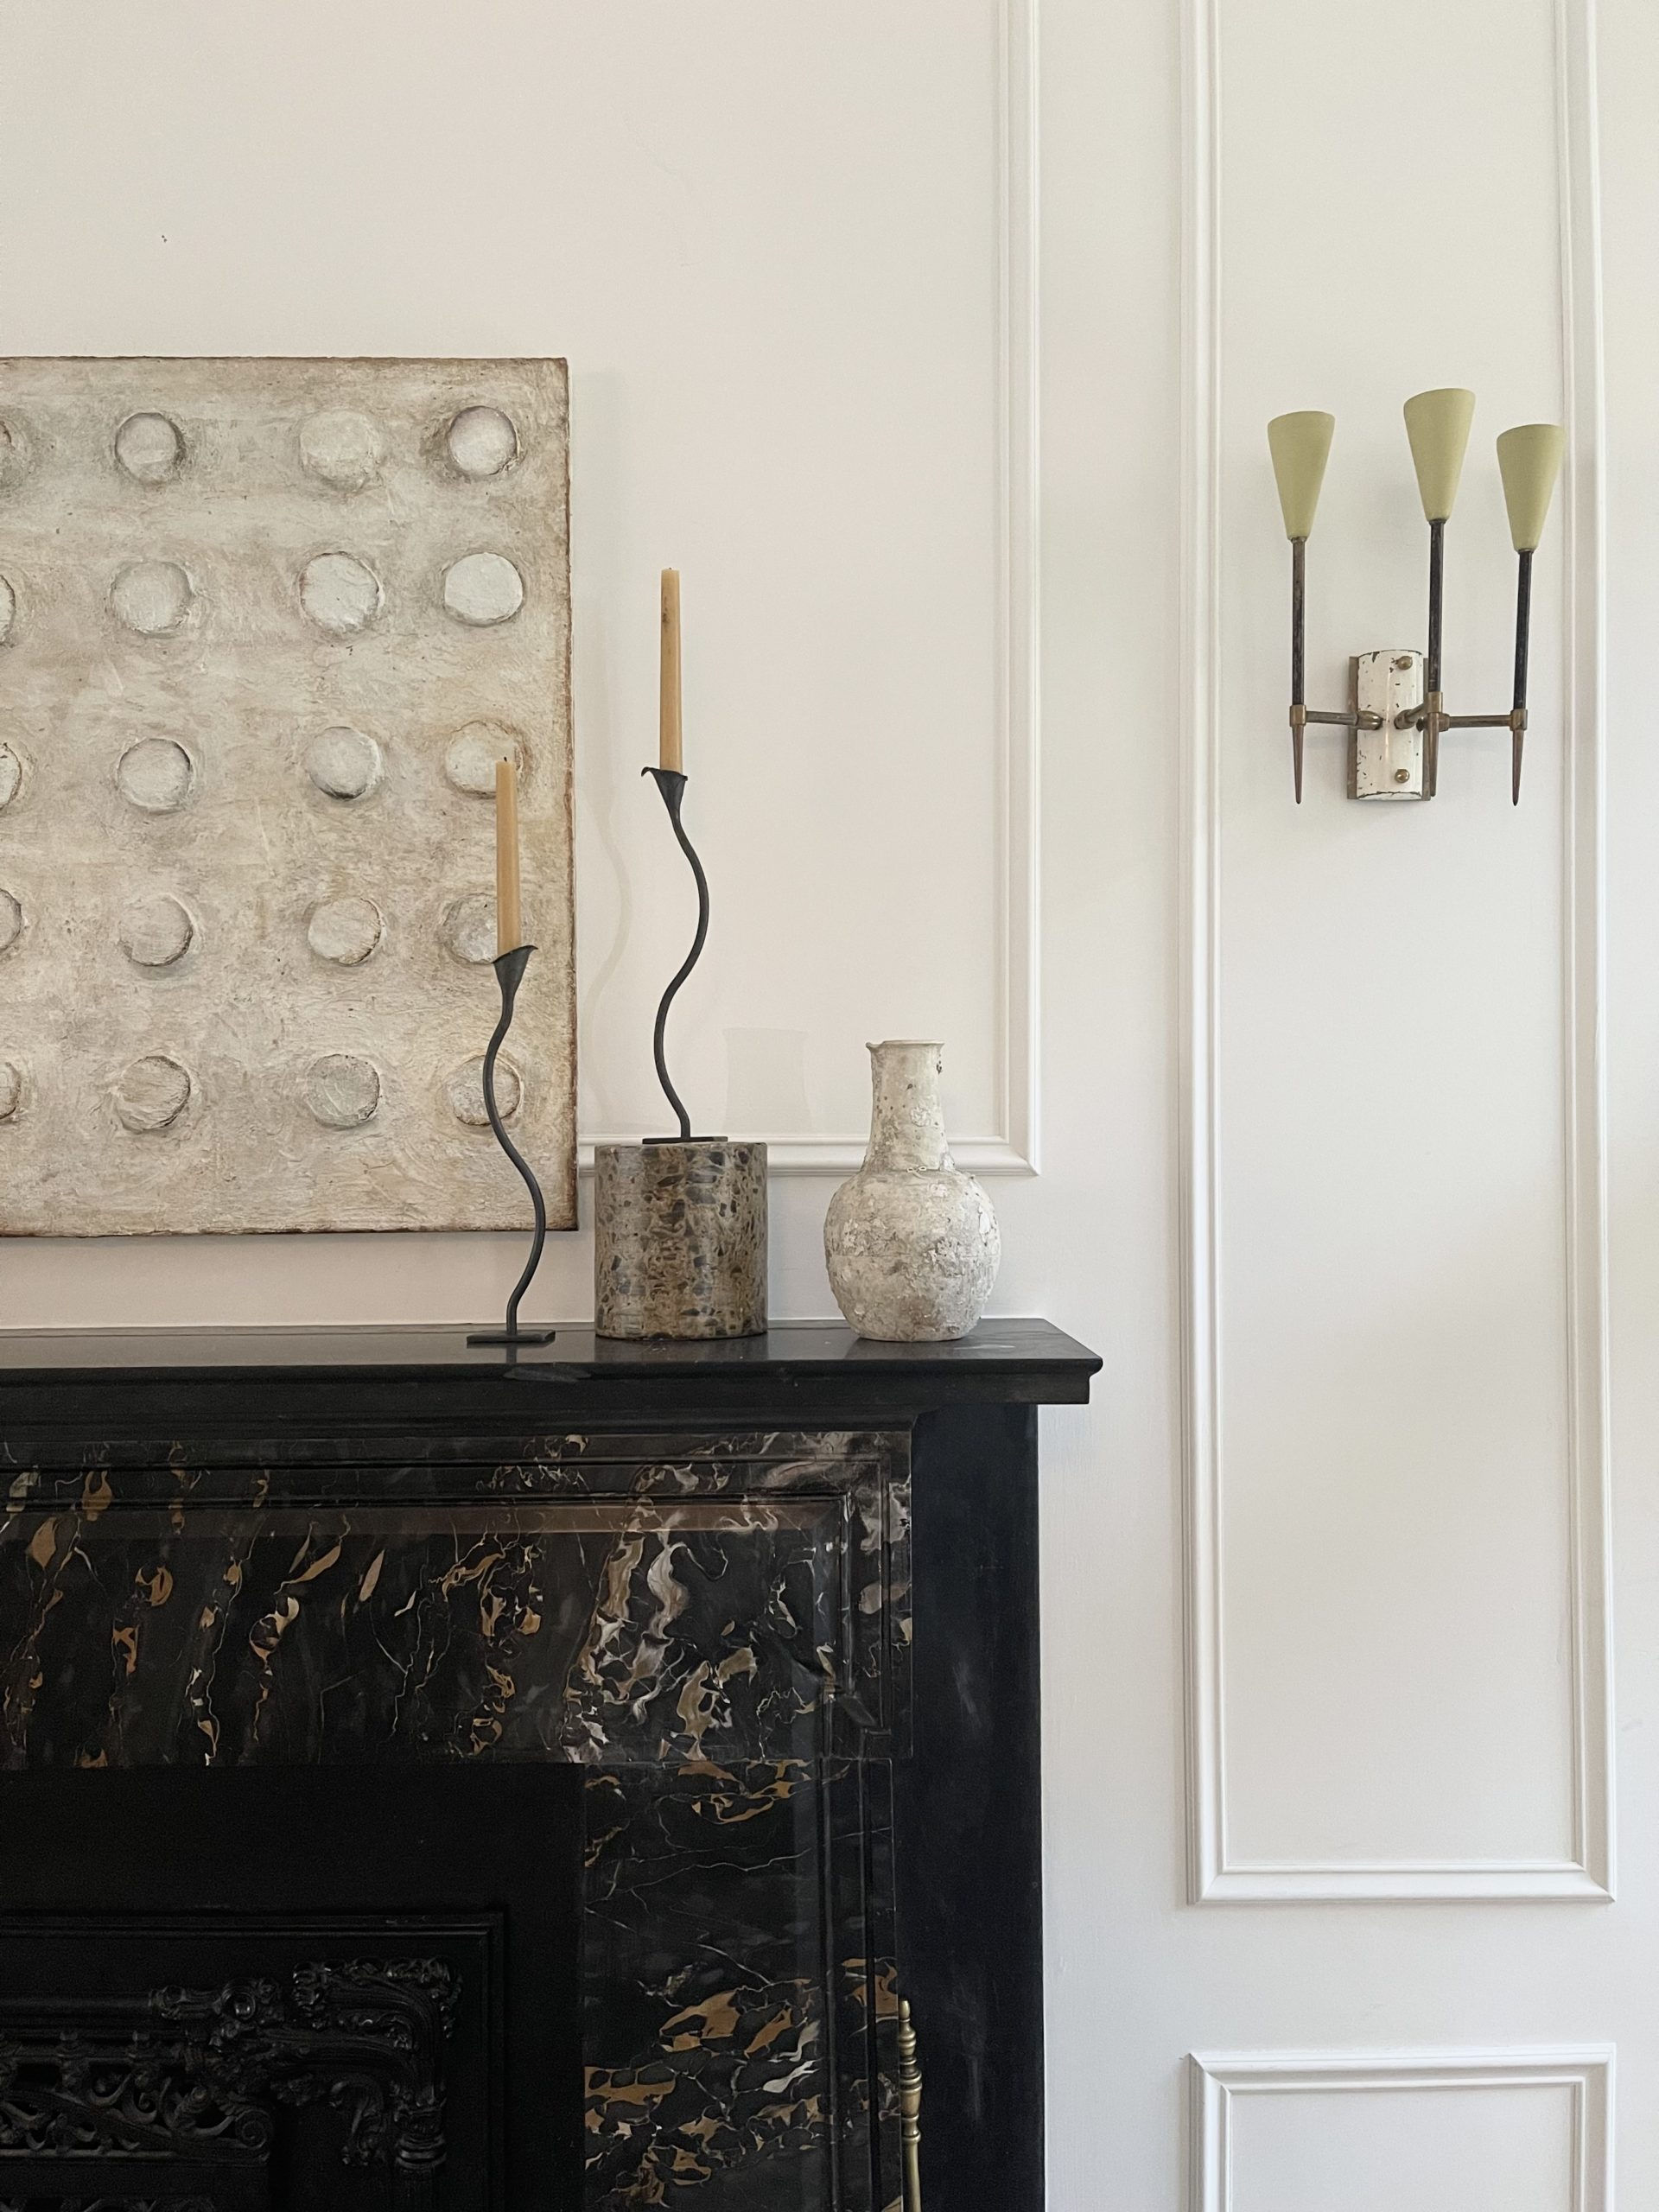 Wrought-Iron Candle Holders Bring a Hint of the Old World Home